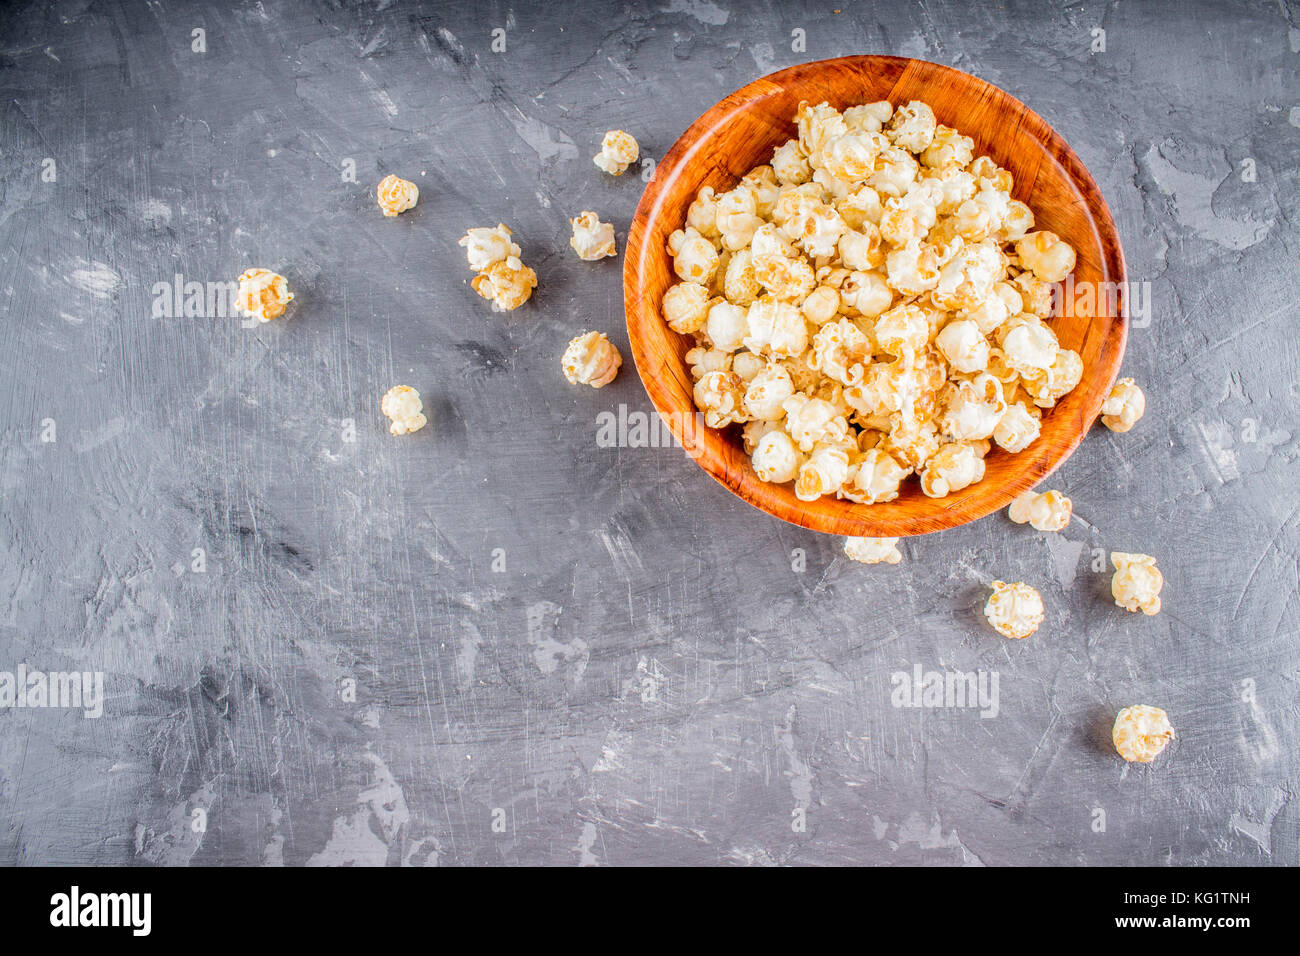 popcorn on a gray background. - Stock Image